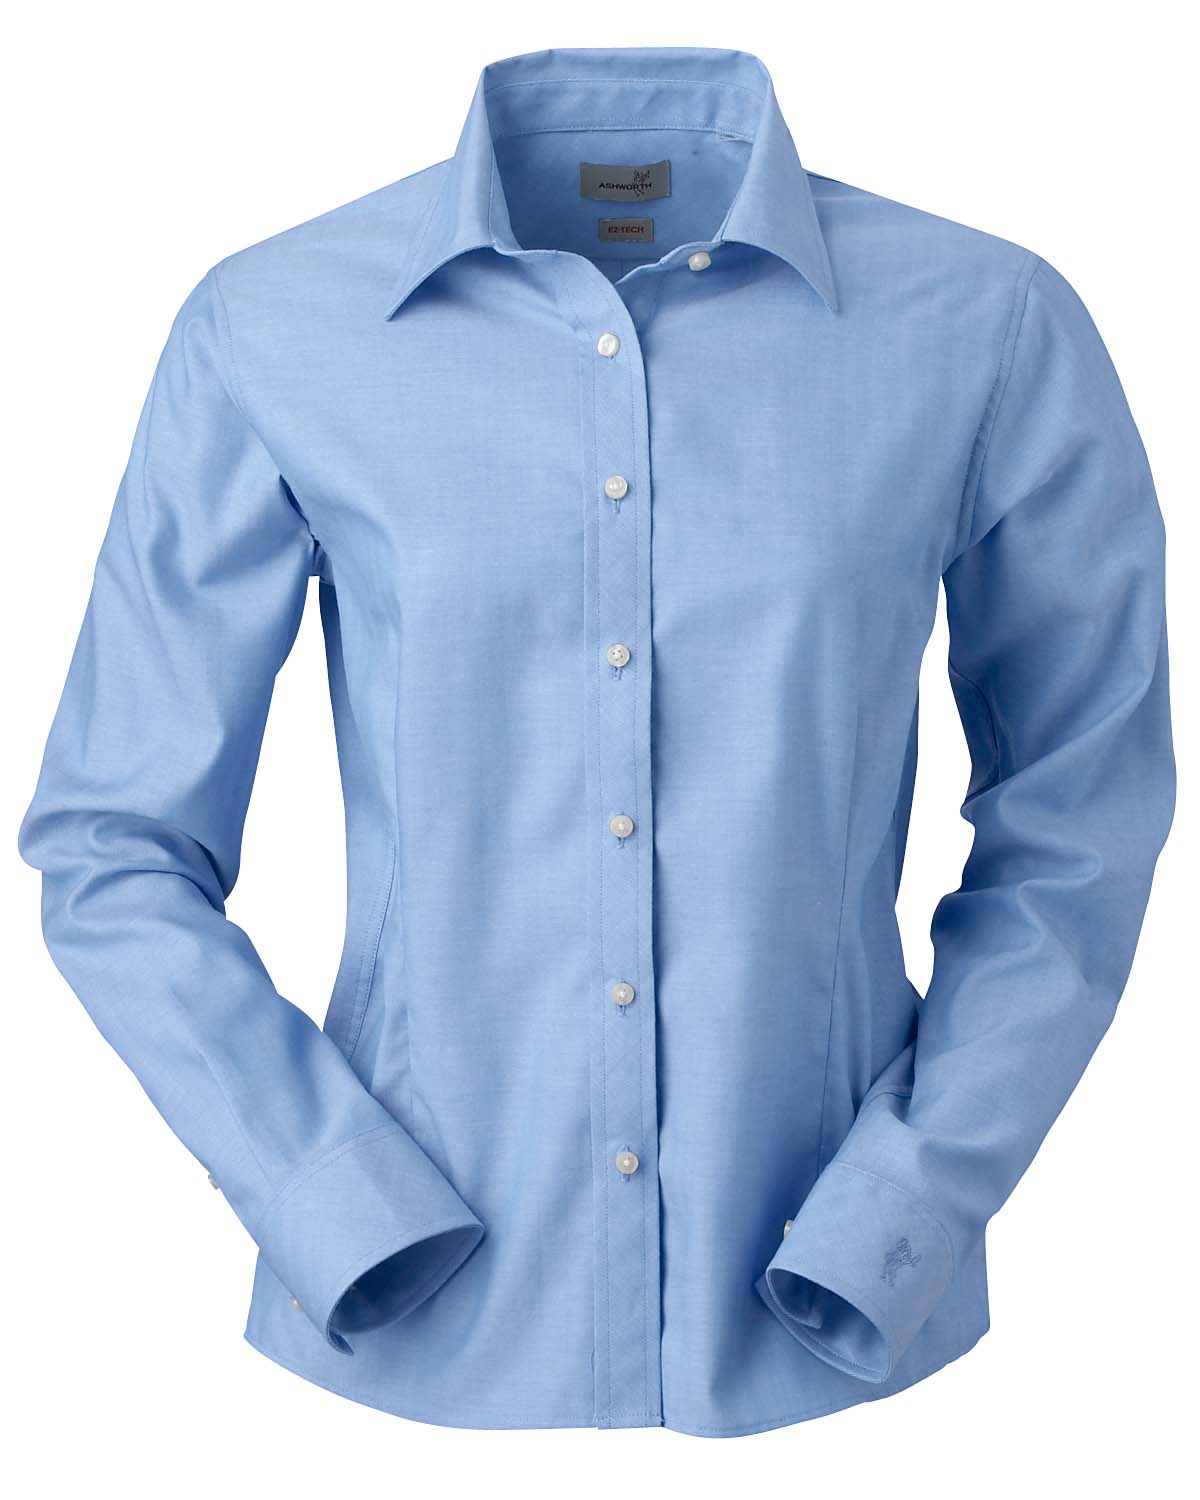 Informal Dress Shirt Outfits